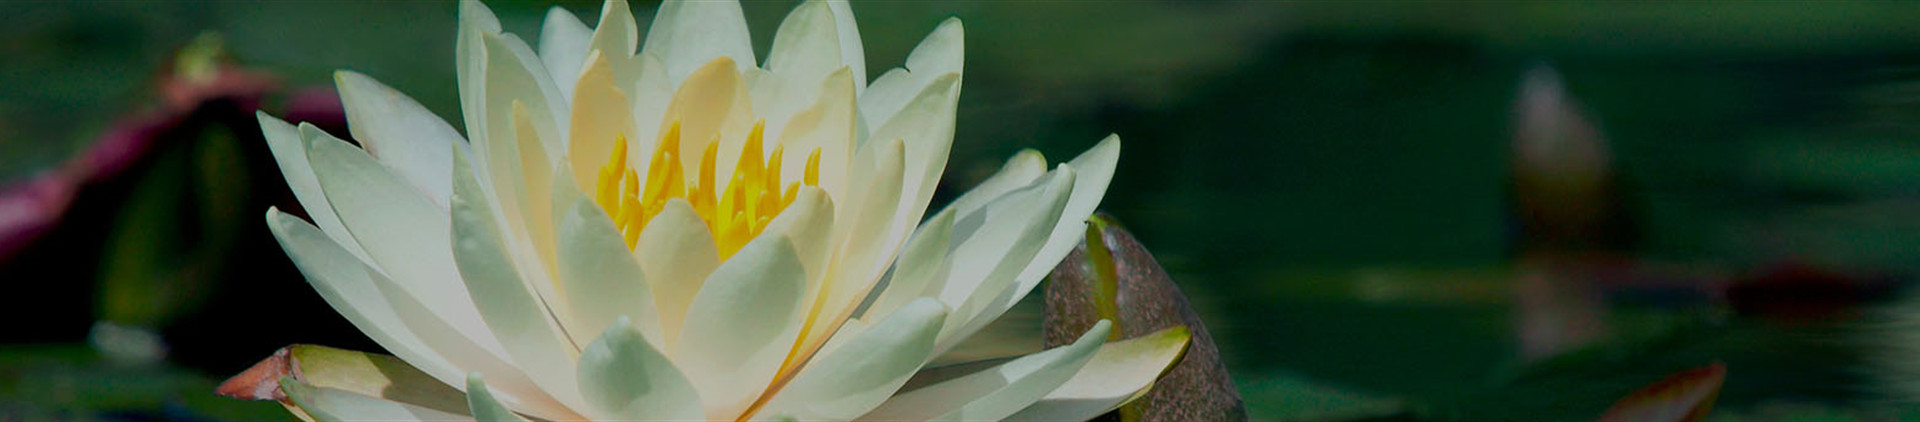 Resources | Nie Family Funeral Home & Cremation Service